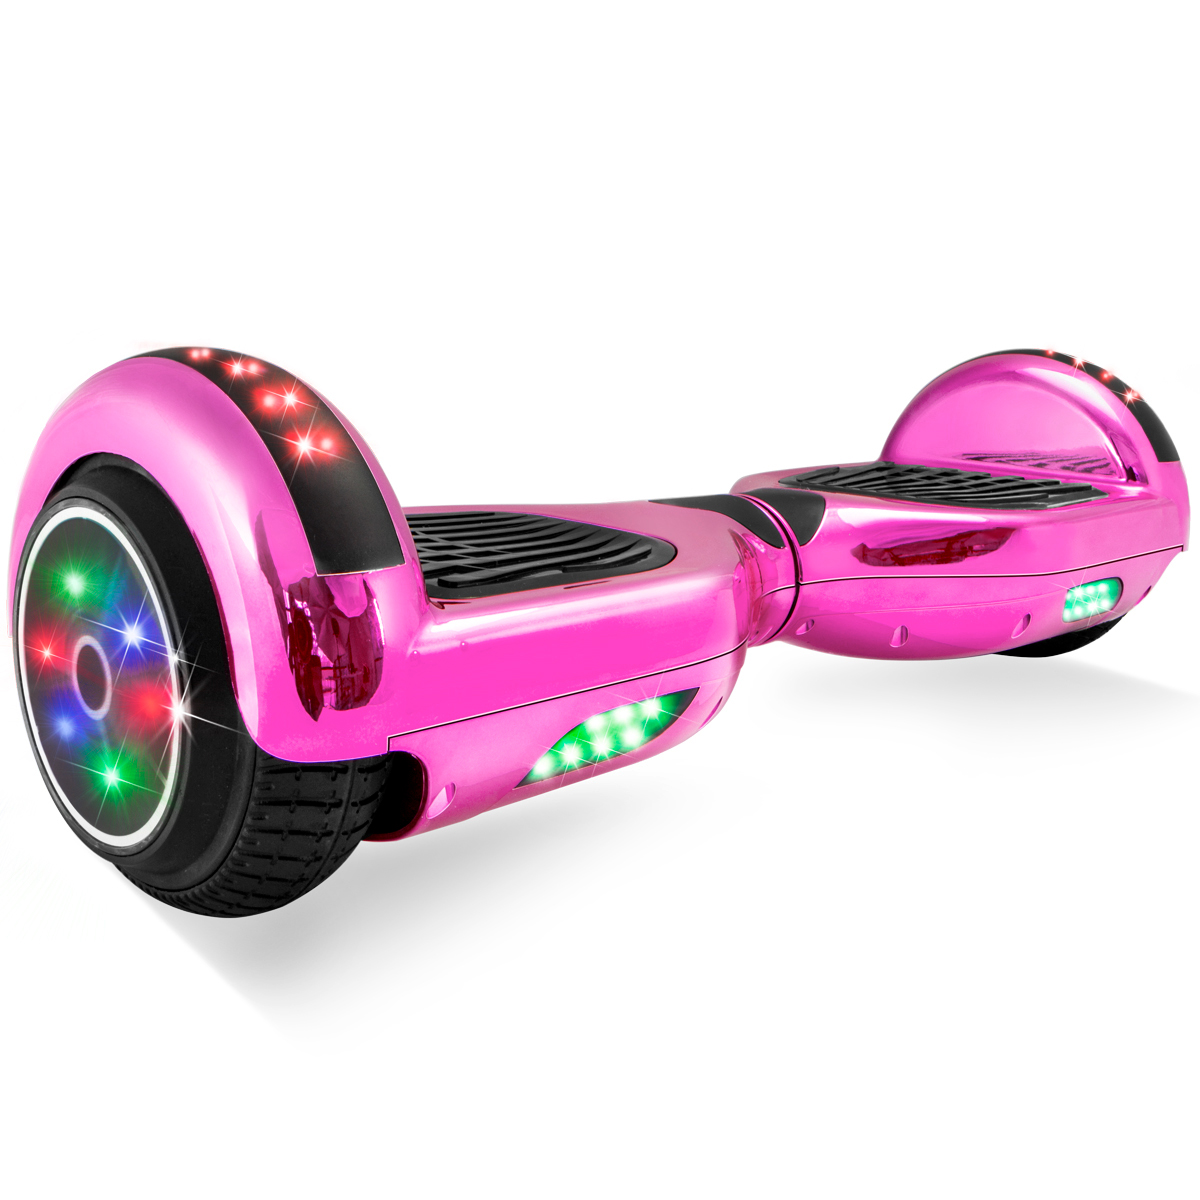 Self Balancing Electric Scooter Hoverboard UL CERTIFIED, Chrome Pink